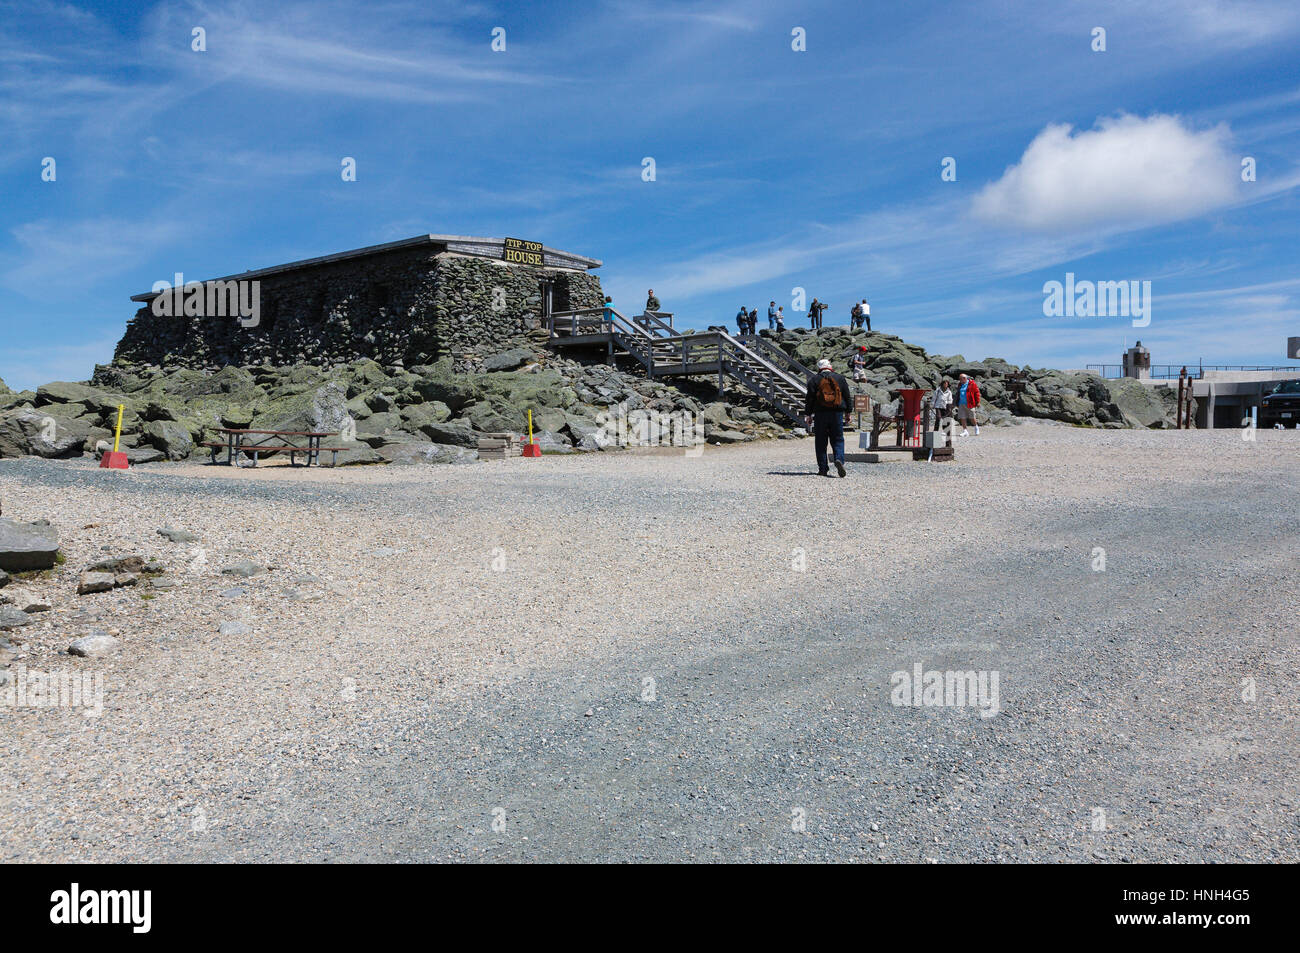 The Tip Top House (originally built as a hotel in 1853) on the summit of Mount Washington in the White Mountains, - Stock Image